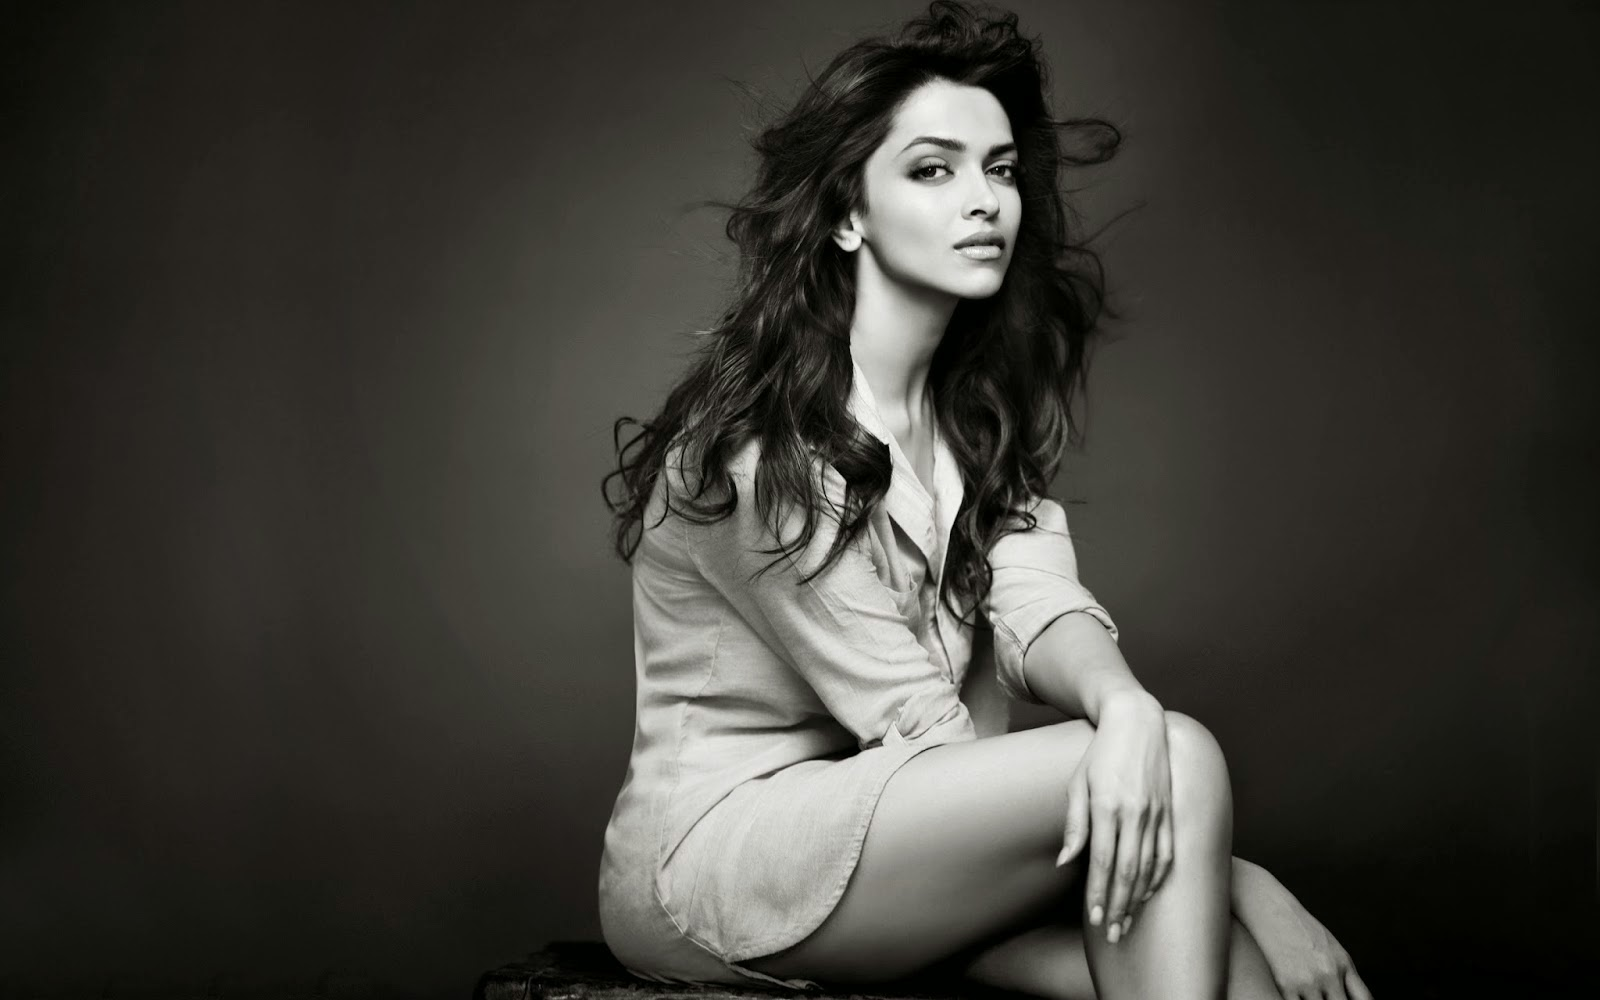 hot deepika padukone photoshot wallpaper.jpg